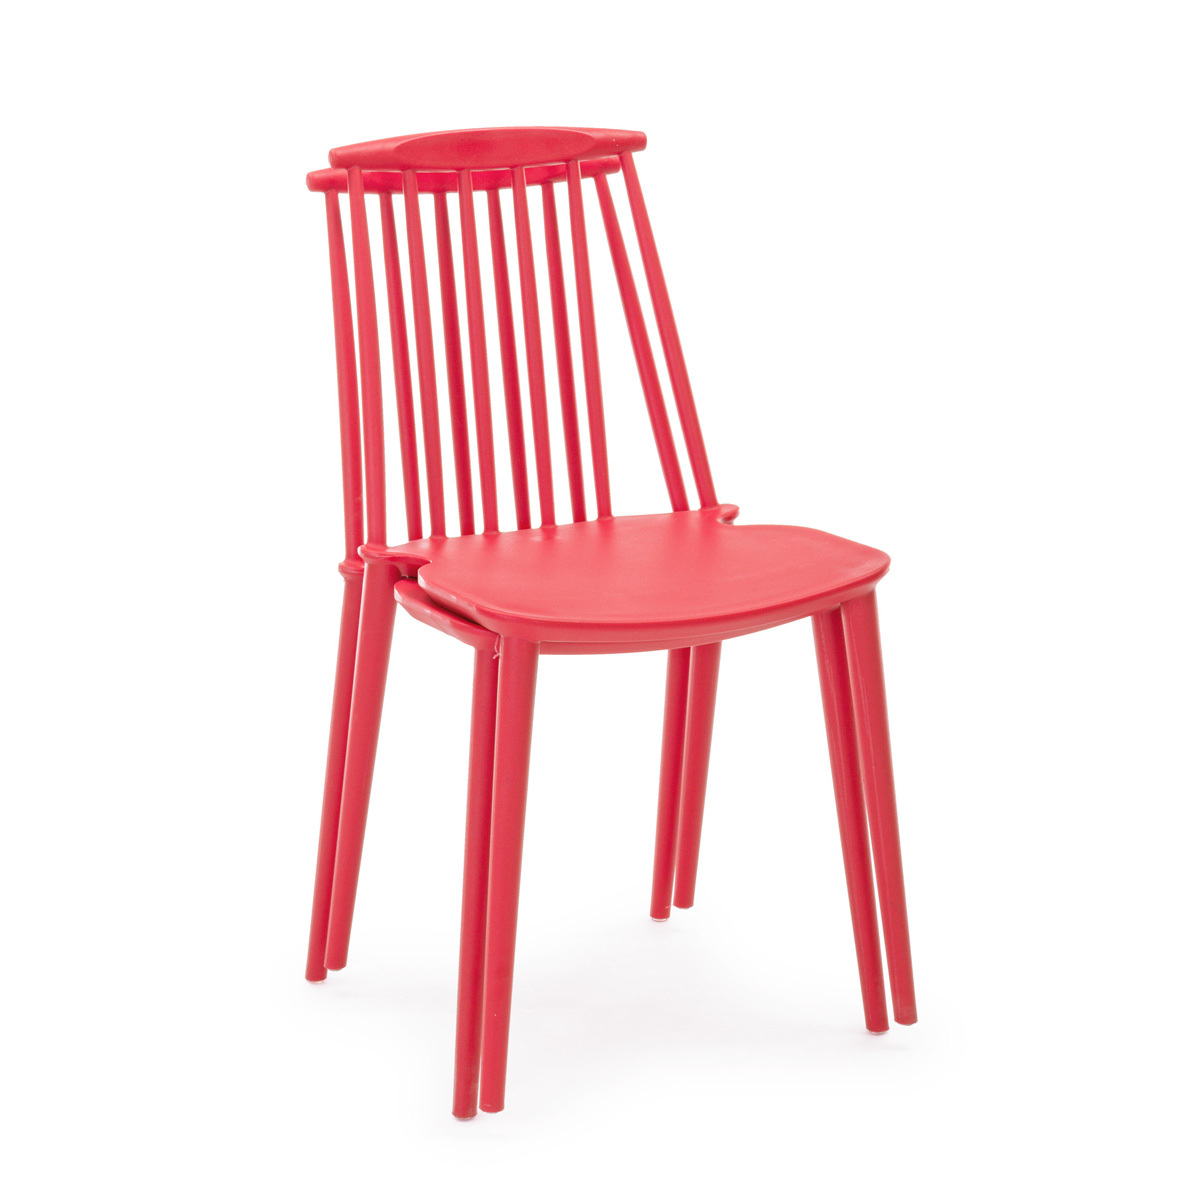 Photos 5: Bizzotto Chair in polypropylene - red 0731690